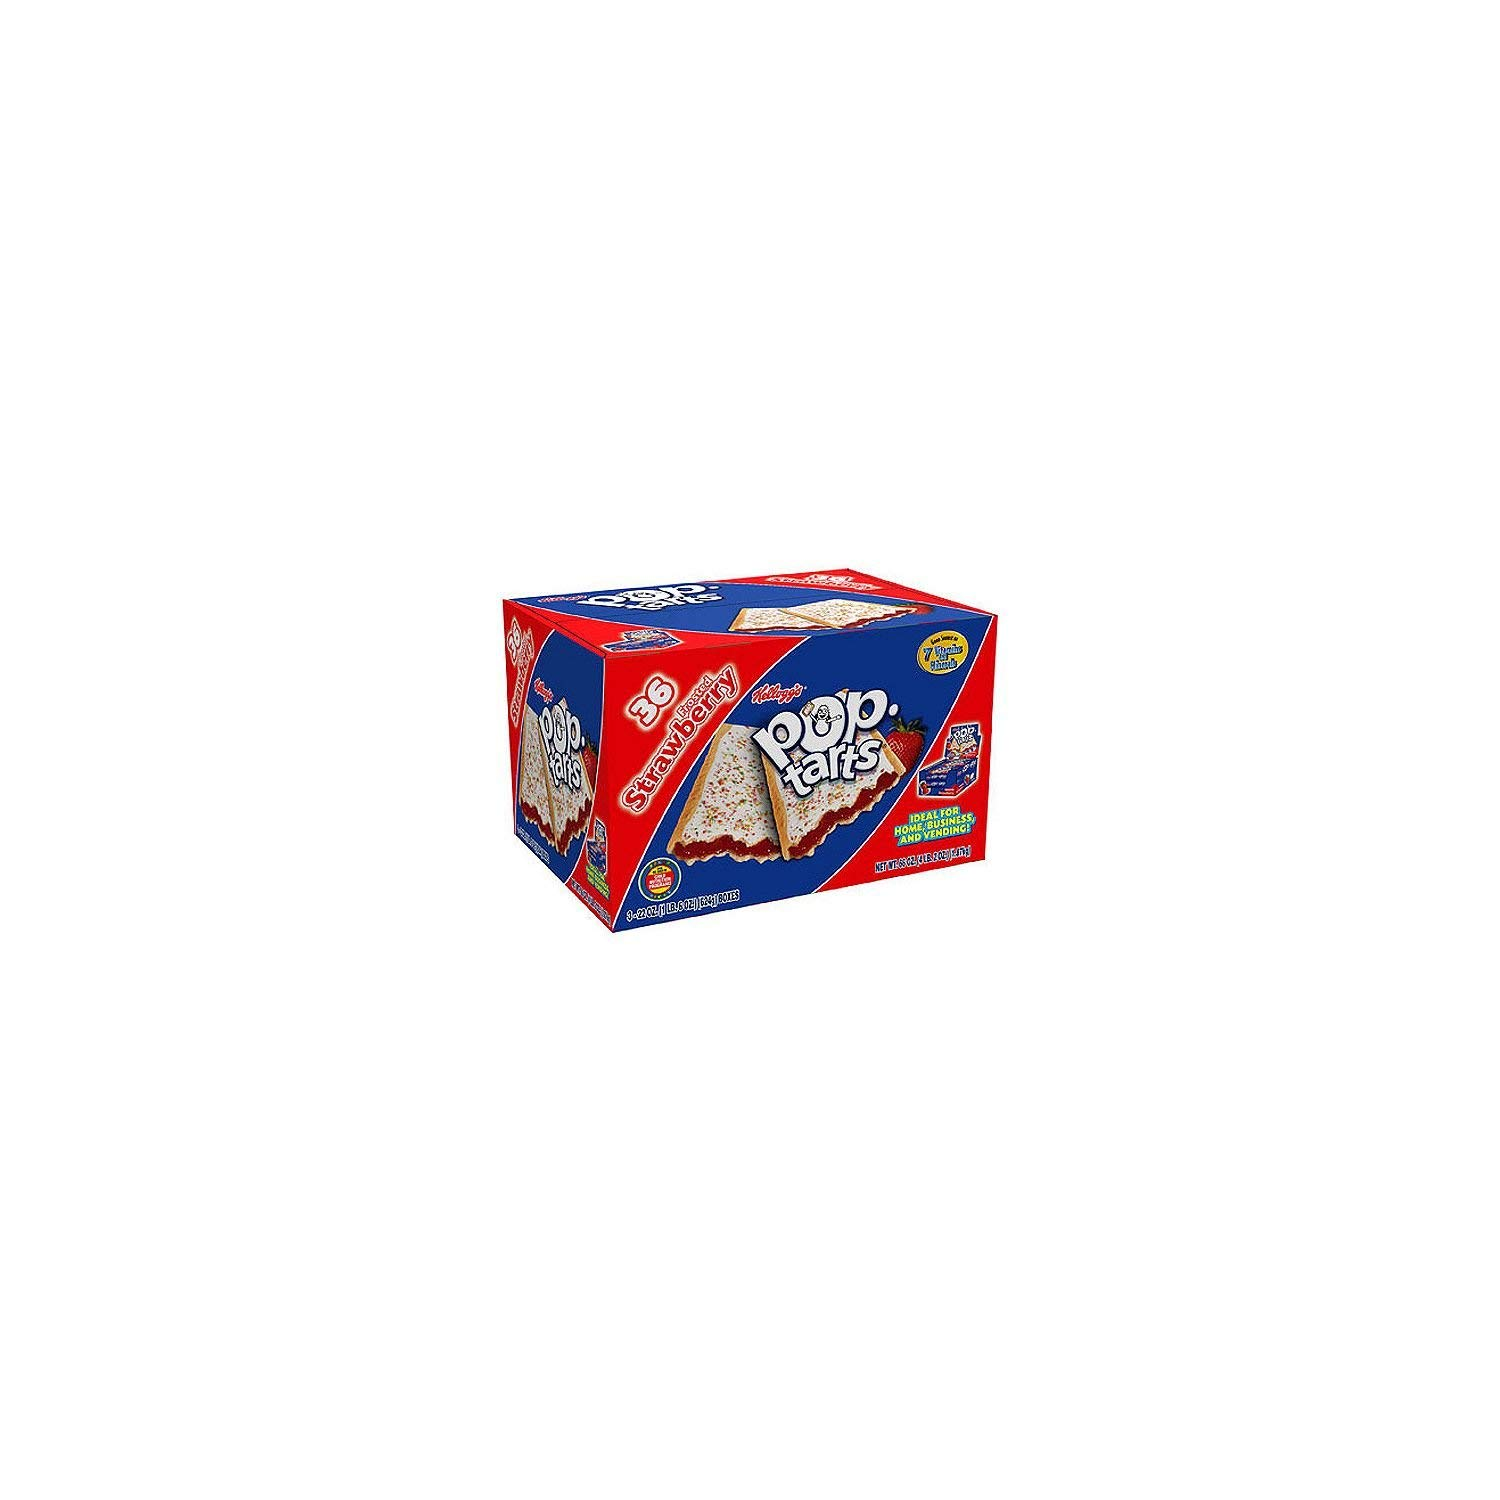 Kellogg's Pop Tarts Frosted Strawberry (36 ct.) SCS